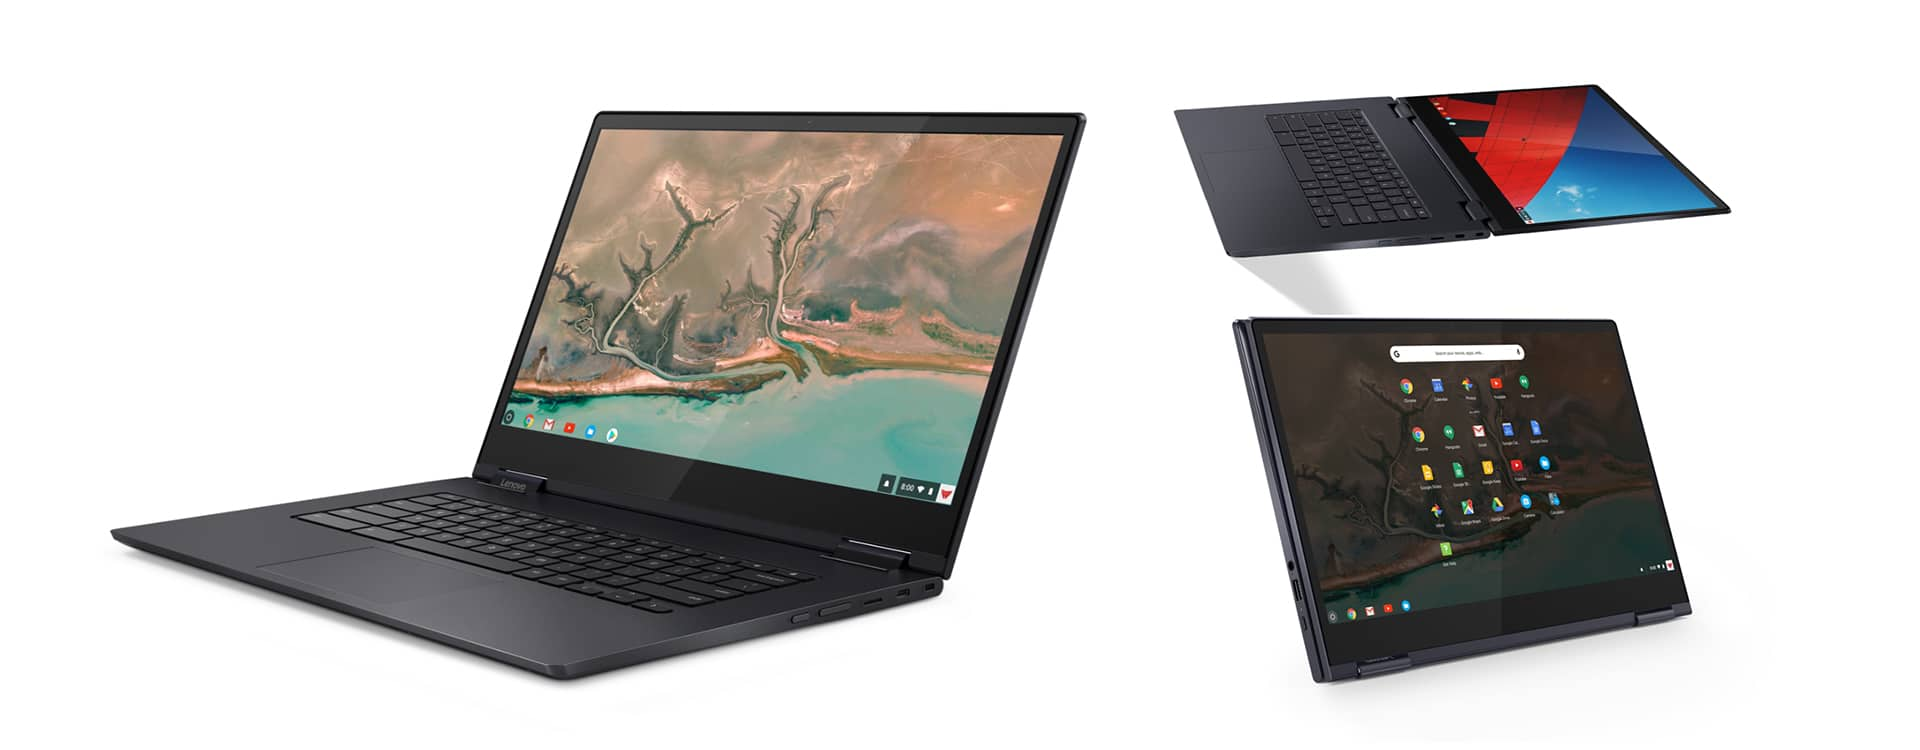 The 15-inch Yoga Chromebook